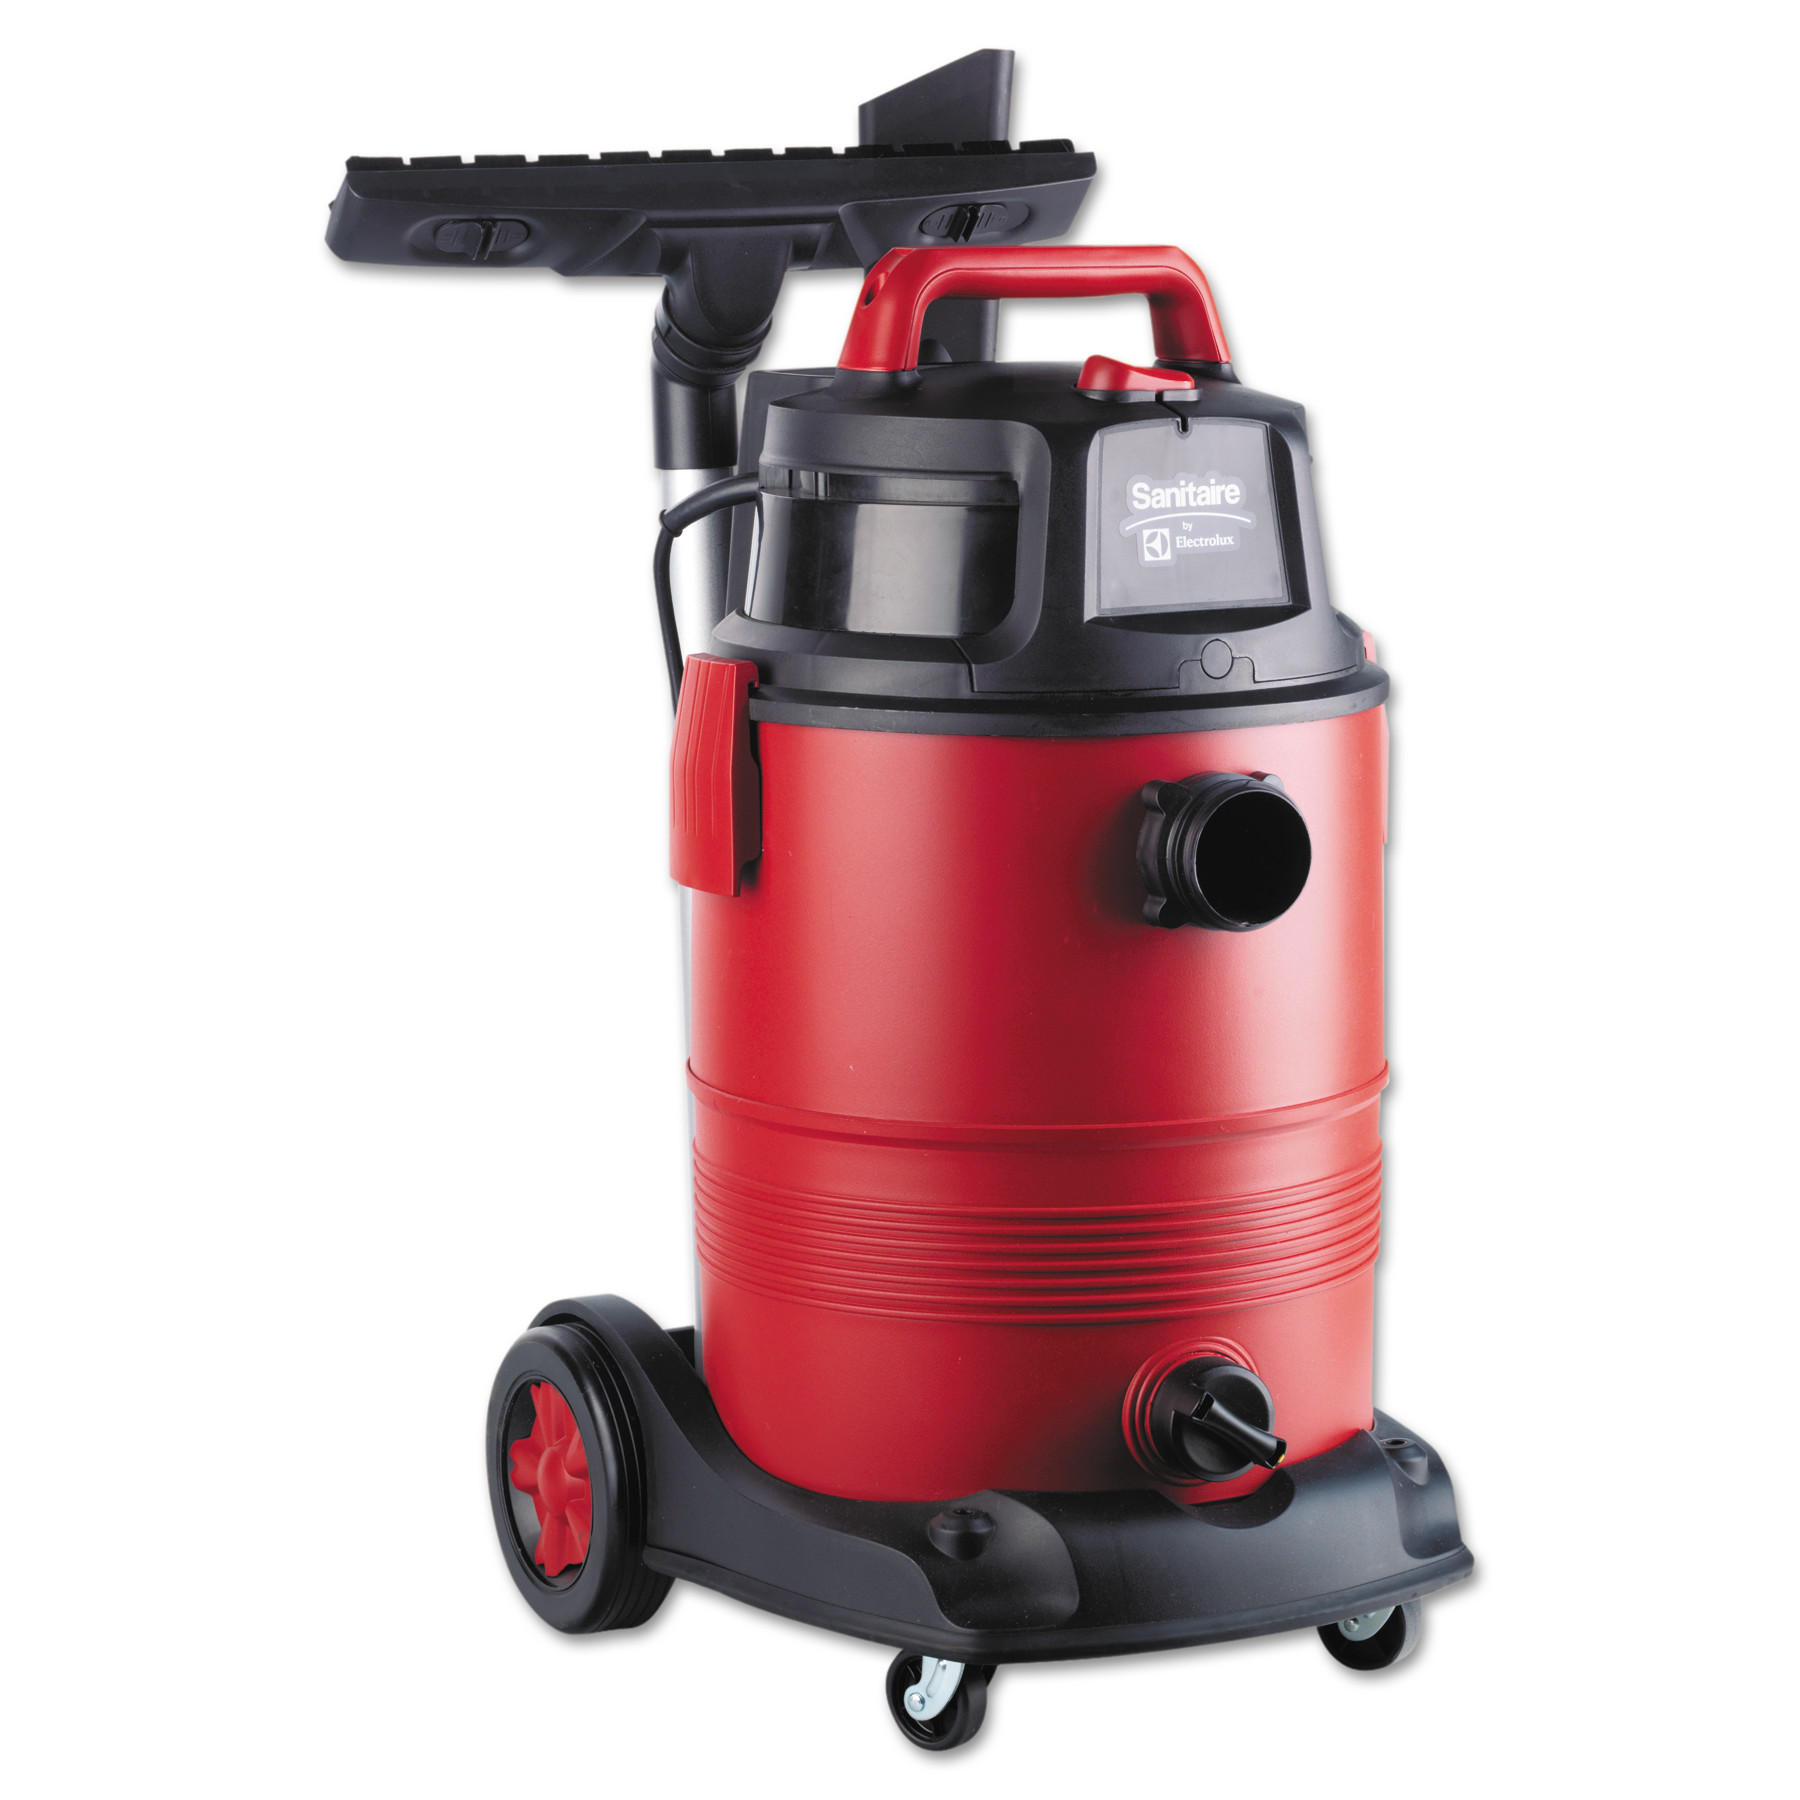 Sanitaire Commercial 8 Gallon Wet/Dry Vacuum, Red